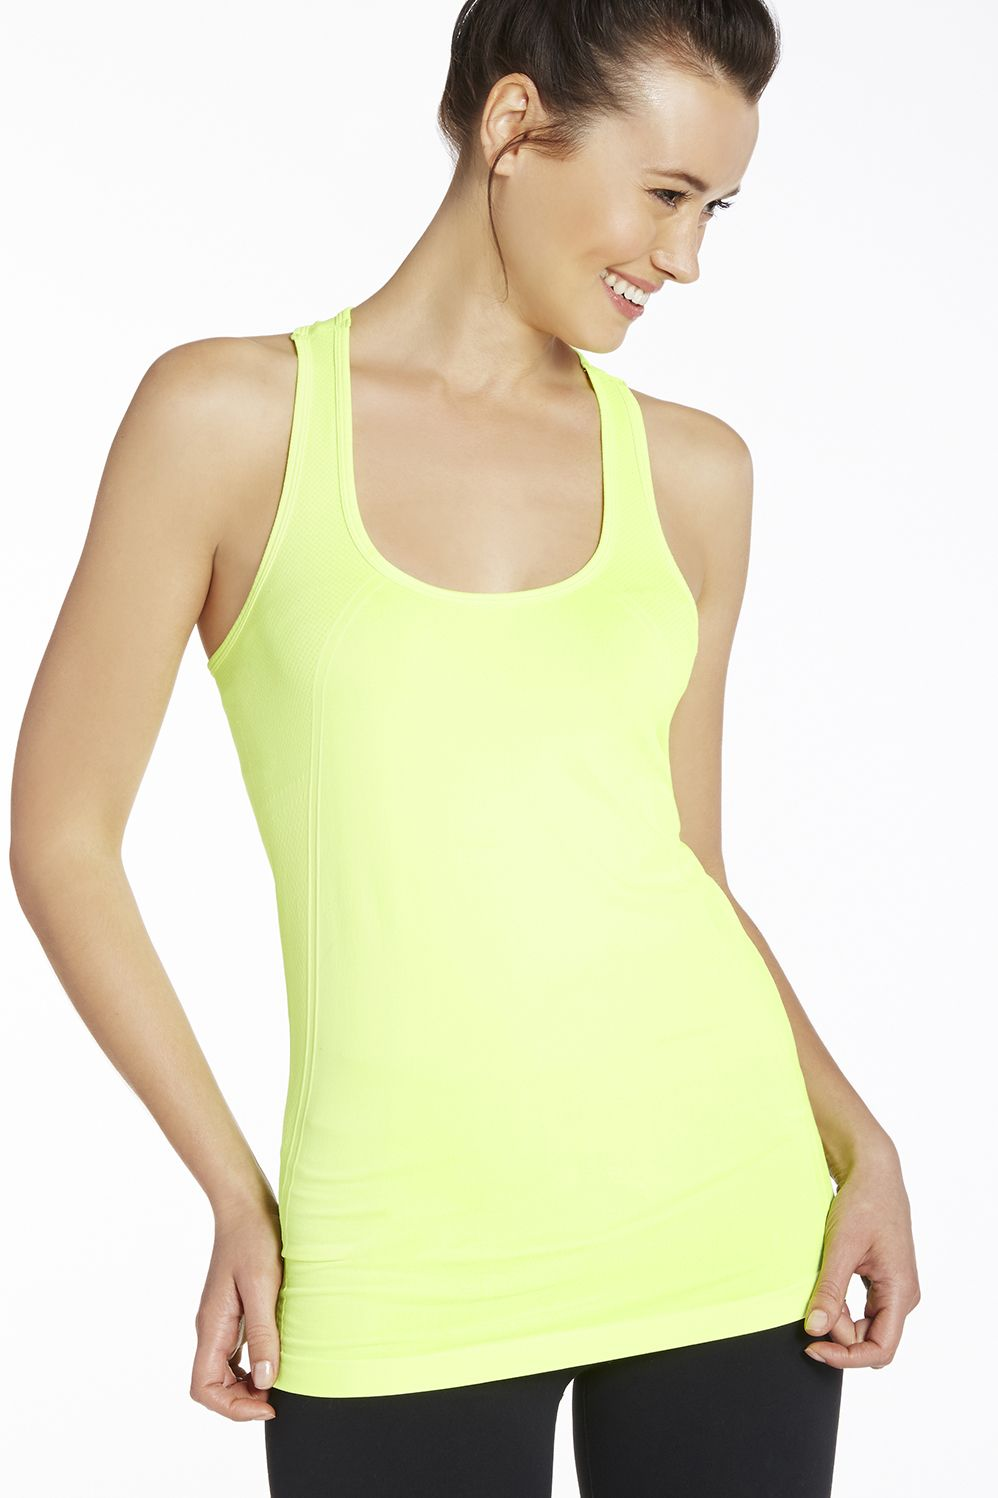 Oula Tank in Neon Yellow Get great deals at Fabletics